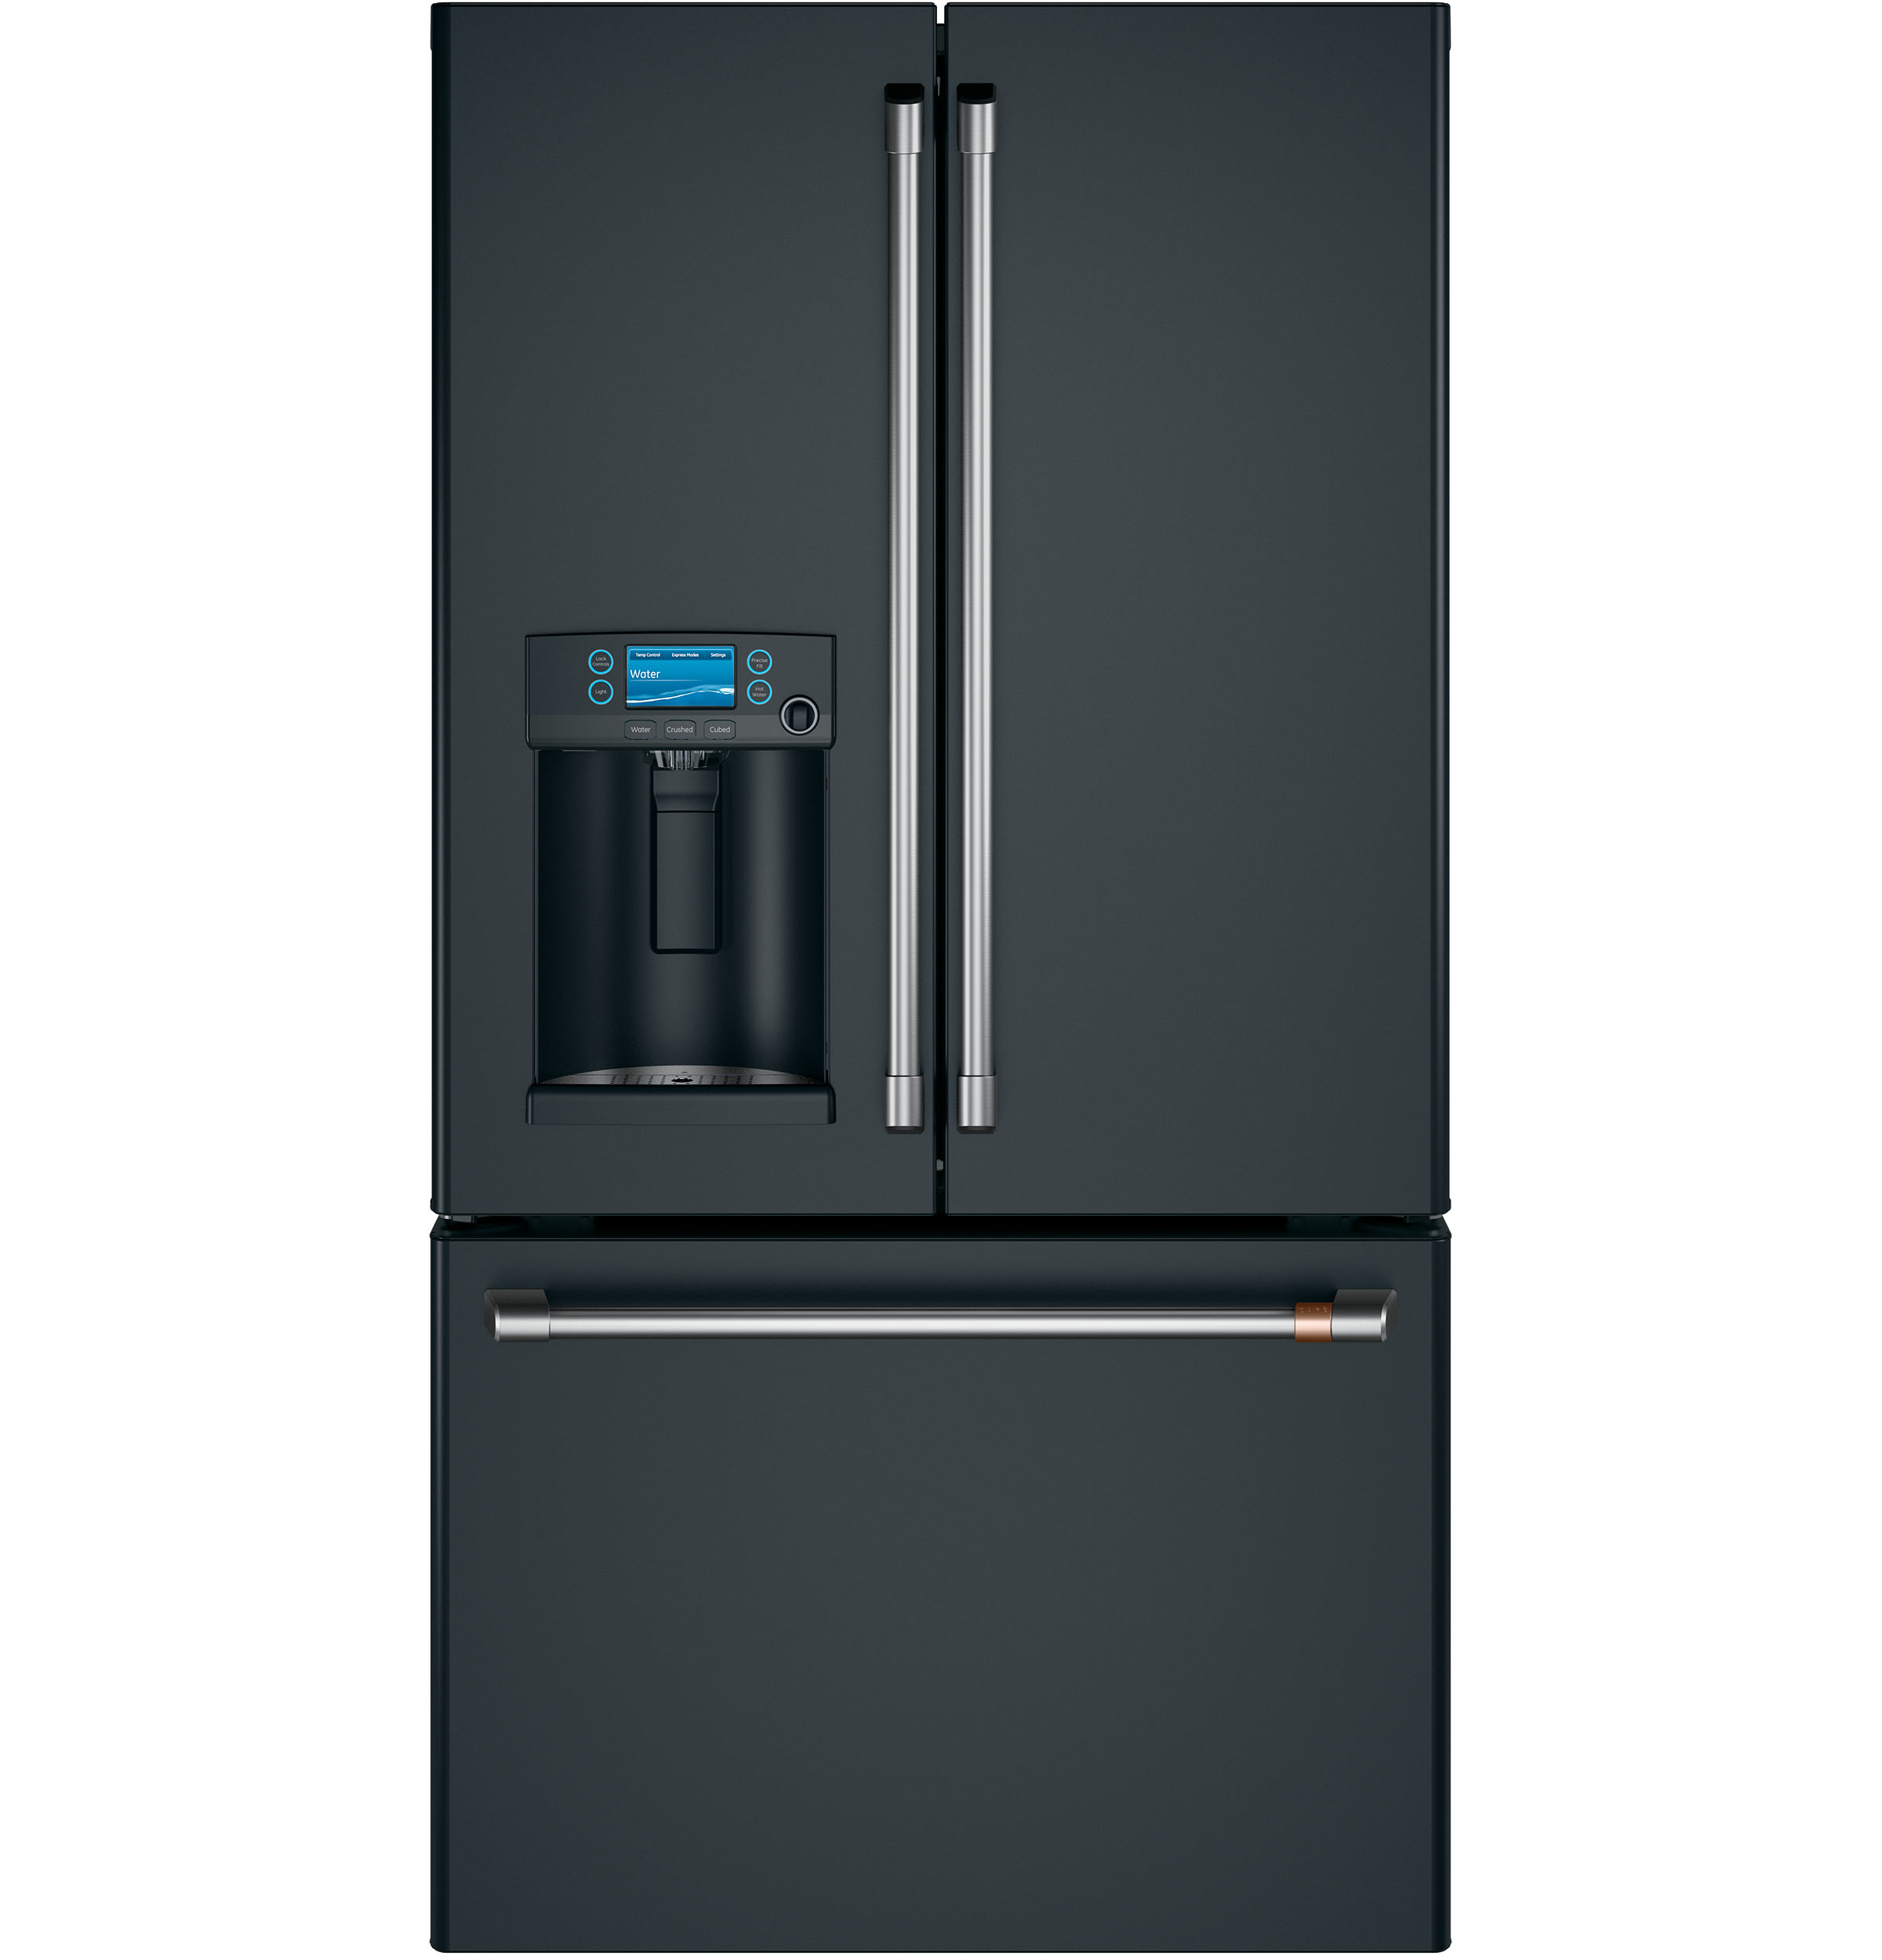 Cafe Café™ ENERGY STAR® 22.1 Cu. Ft. Smart Counter-Depth French-Door Refrigerator with Hot Water Dispenser